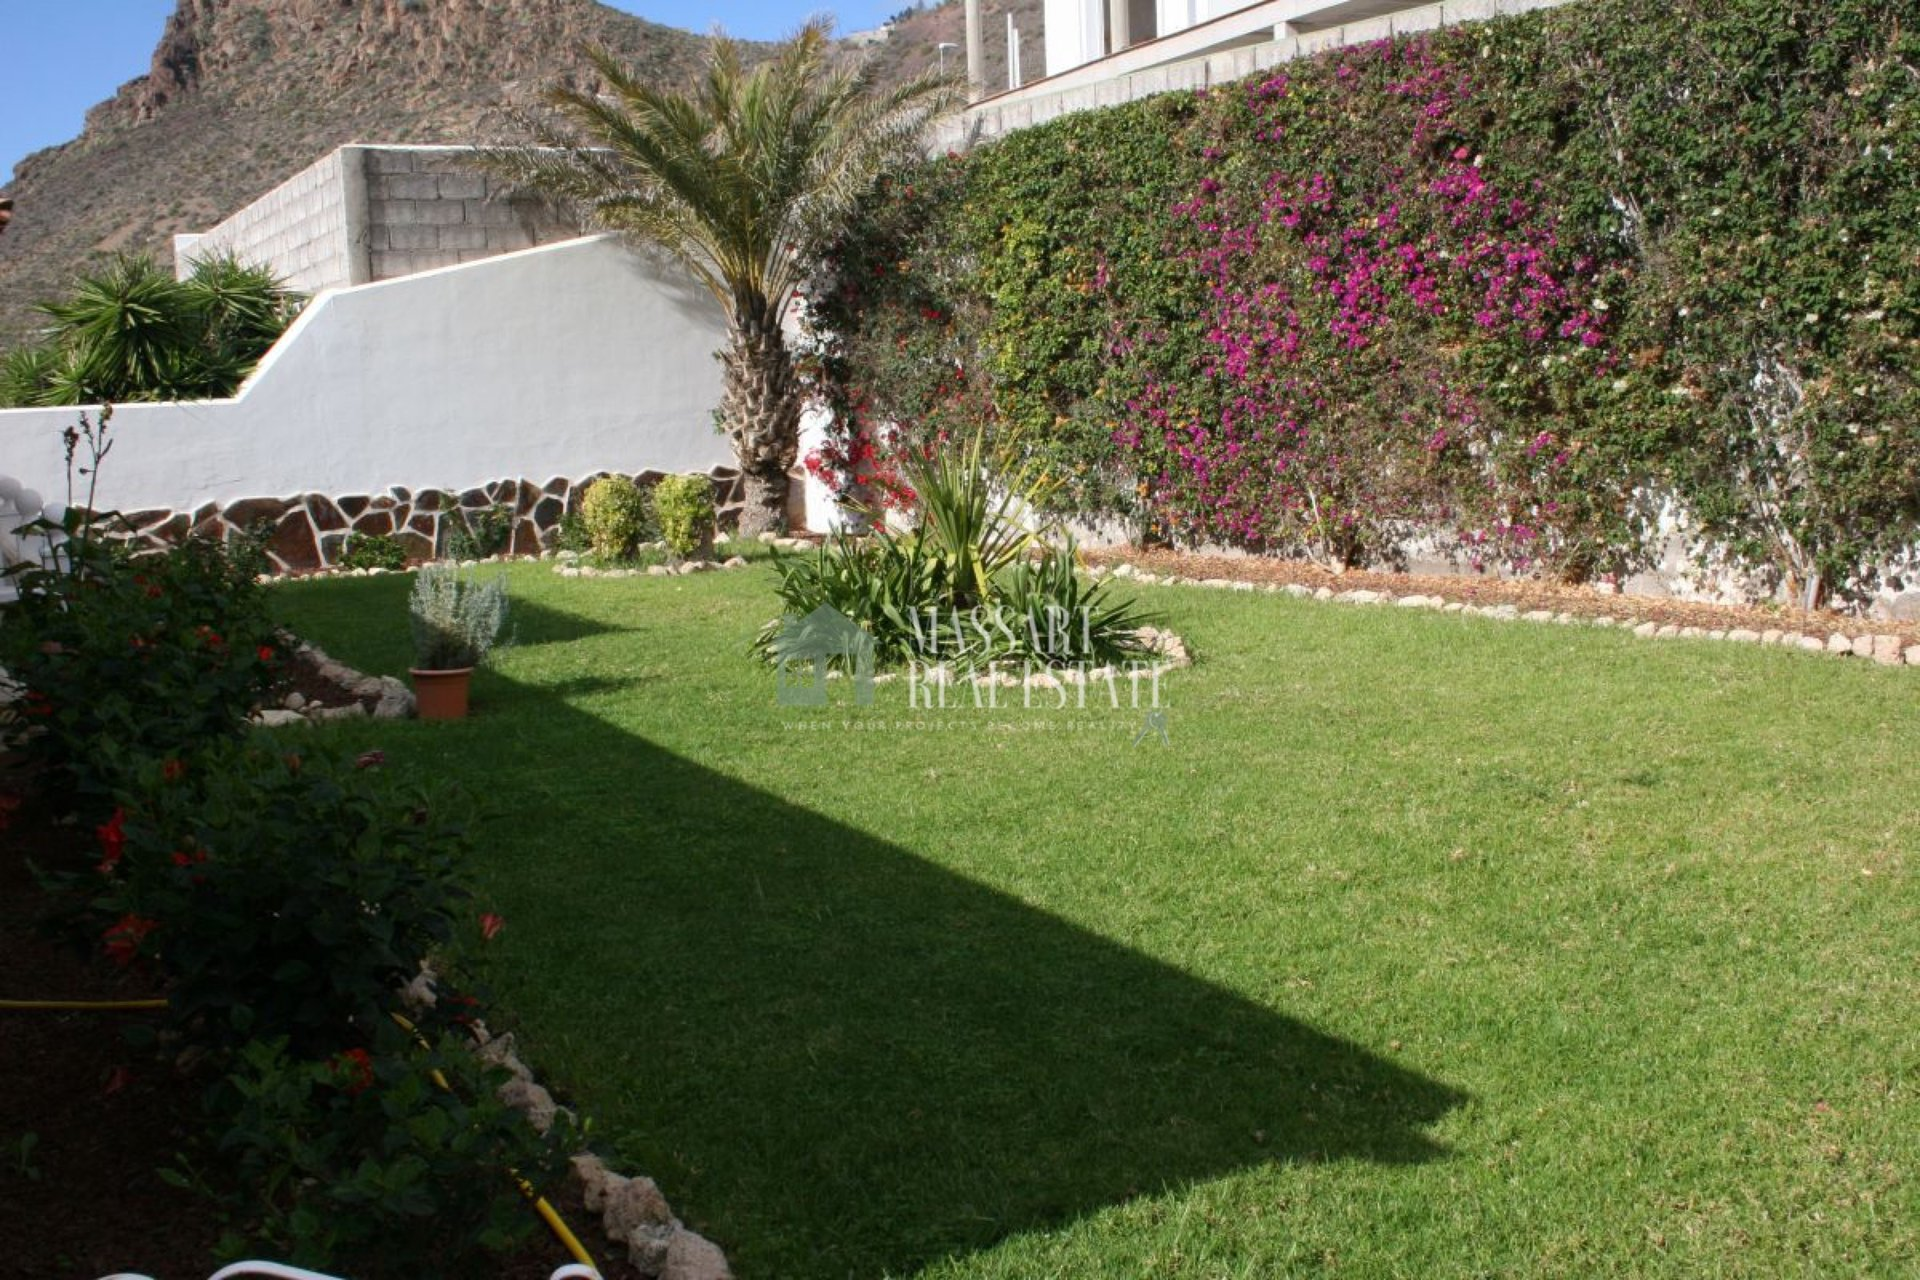 For sale in La Florida (near Valle San Lorenzo), independent villa of 270 m2 located on a large plot of 650 m2.